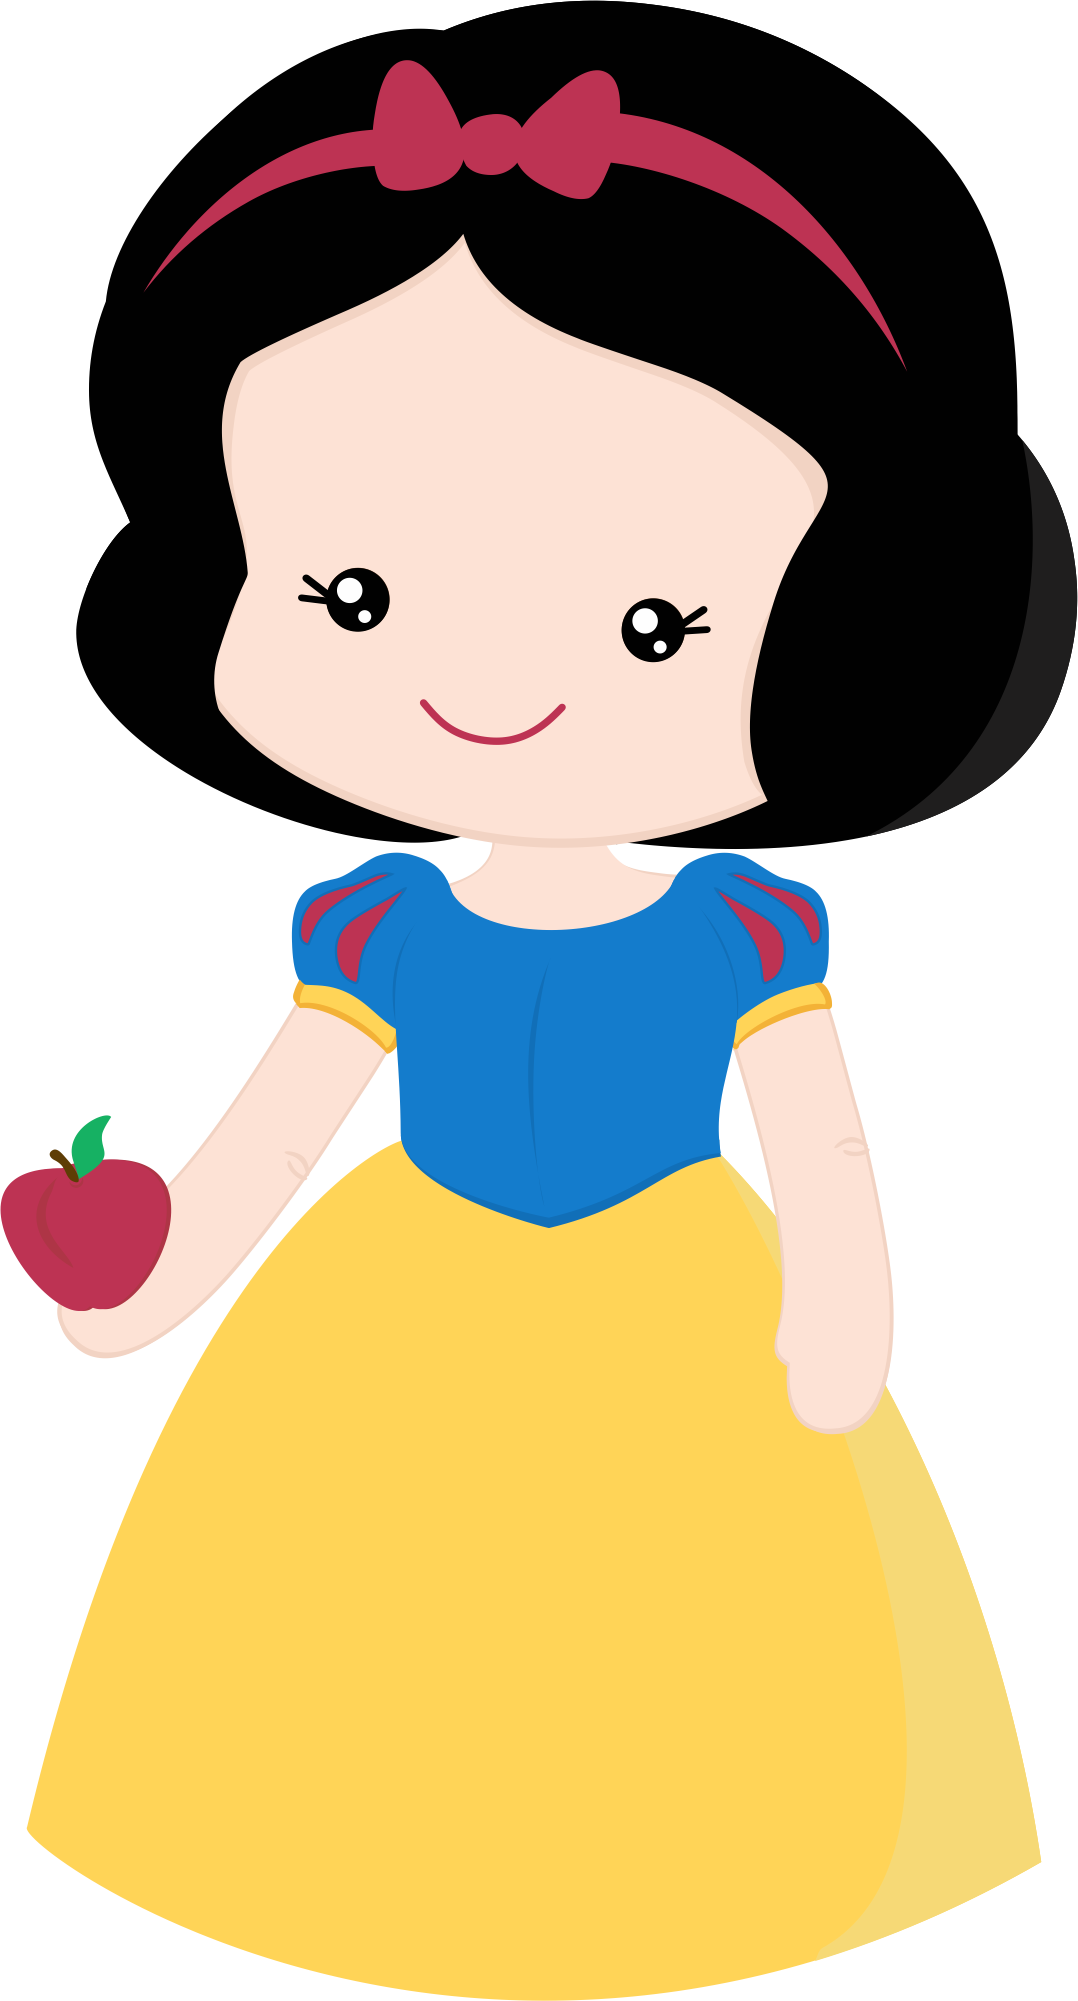 Baby with crown clipart clip art download Baby Disney Princess Clipart at GetDrawings.com | Free for personal ... clip art download